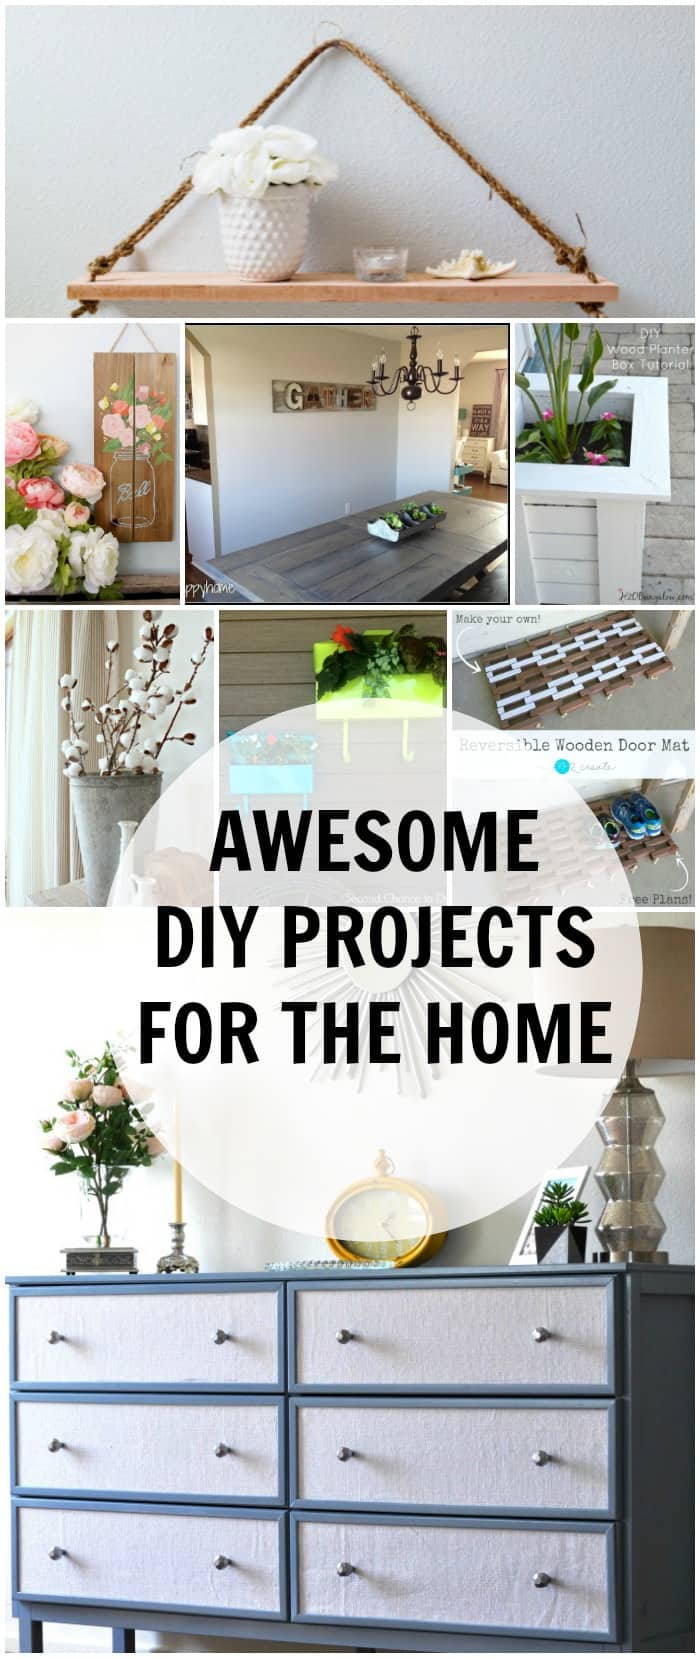 AWESOME DIY PROJECTS FOR THE HOME